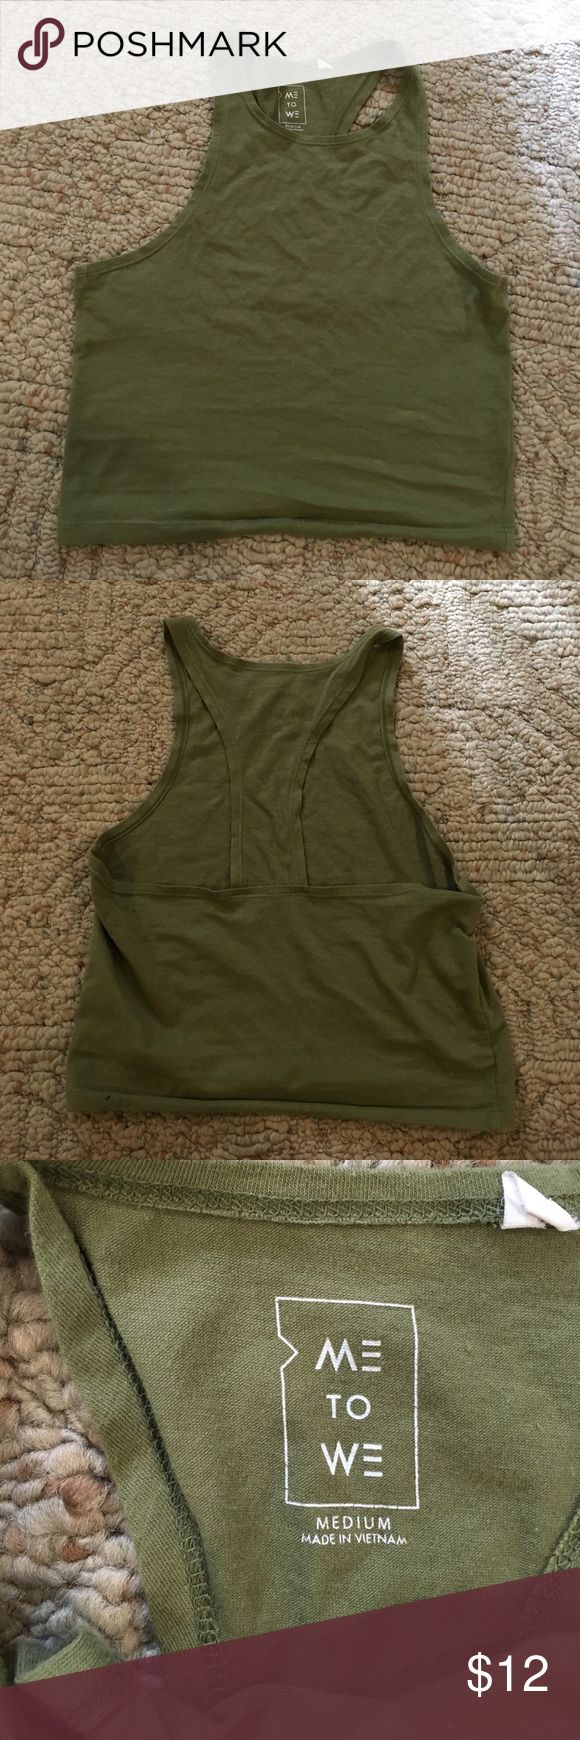 Pacsun green razorback tank top Super cute green razorback tank from pacsun. Listed as medium but could fit XS and S as well. Bundle to save!! Smoke free household PacSun Tops Tank Tops